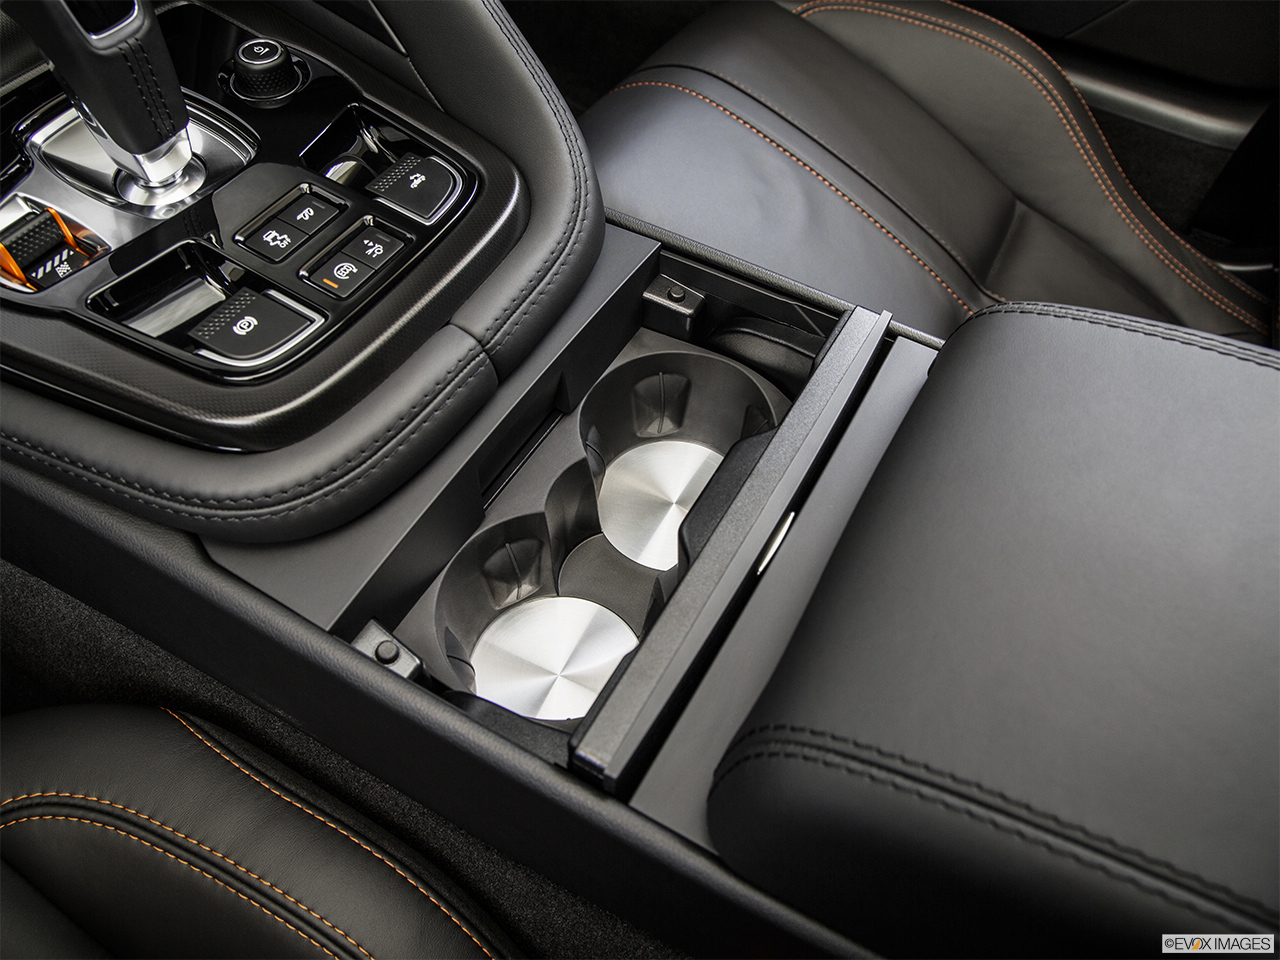 2015 Jaguar F-Type Convertible V8 S Cup holders.